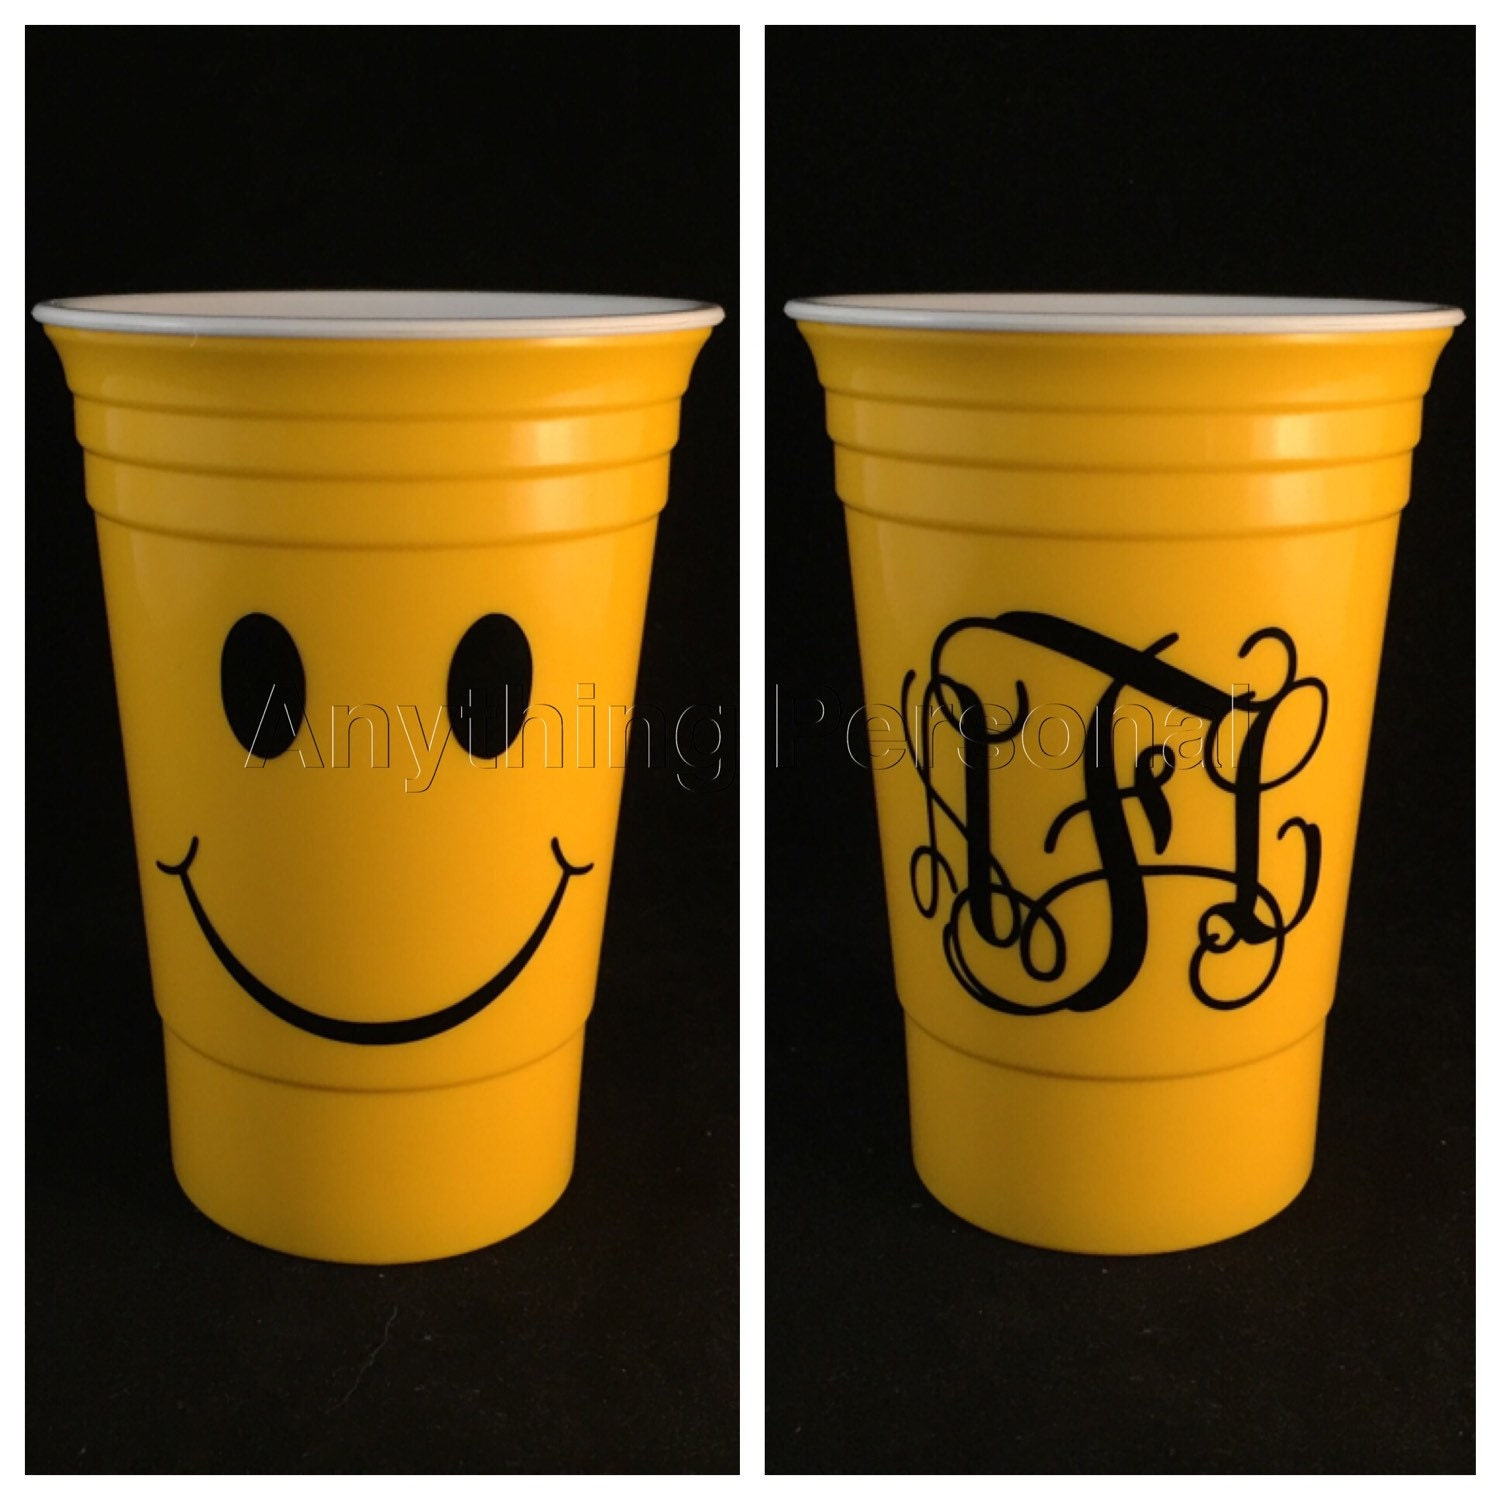 Personalized Solo Cup Smiley Face Cup Monogram Solo Cup